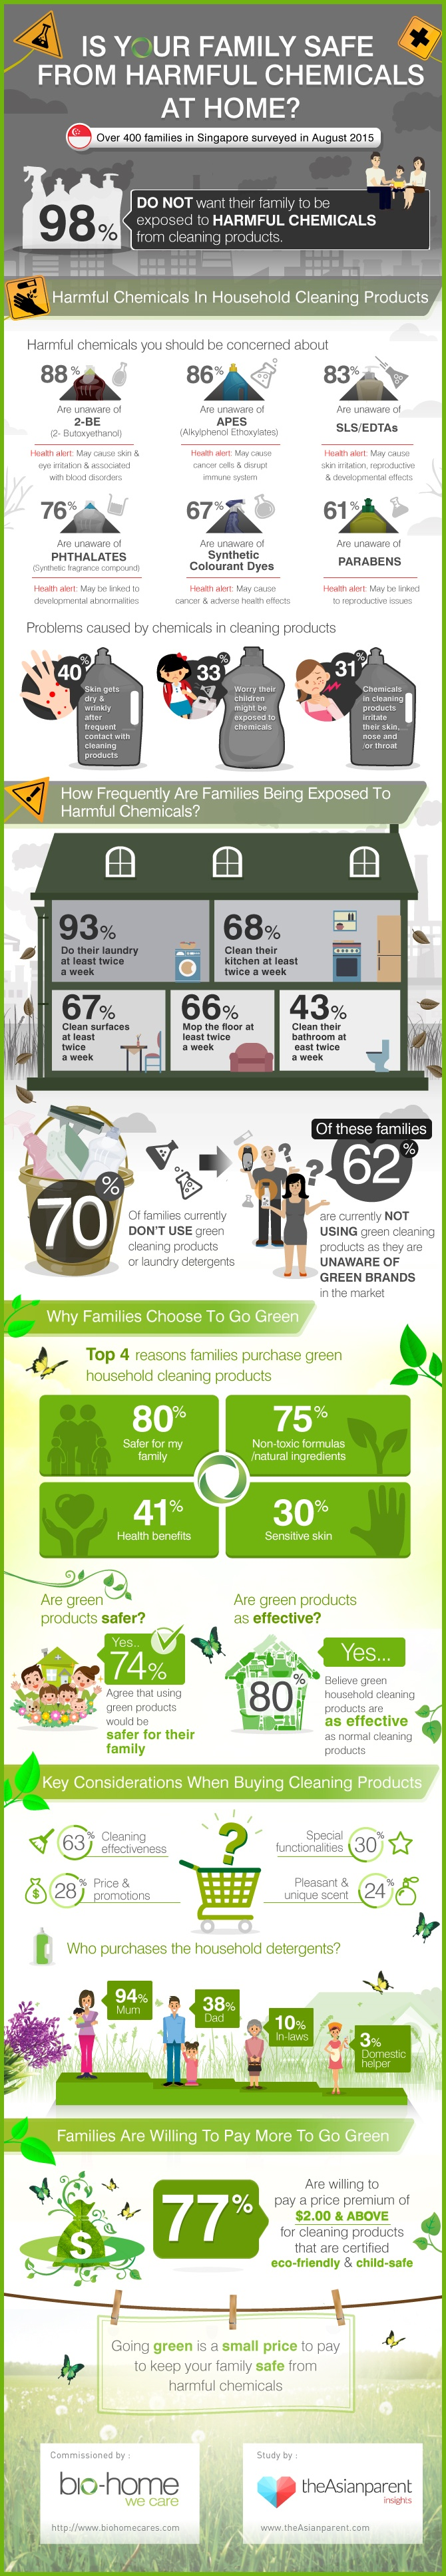 Household Cleaning Products Survey 2015 Infographic